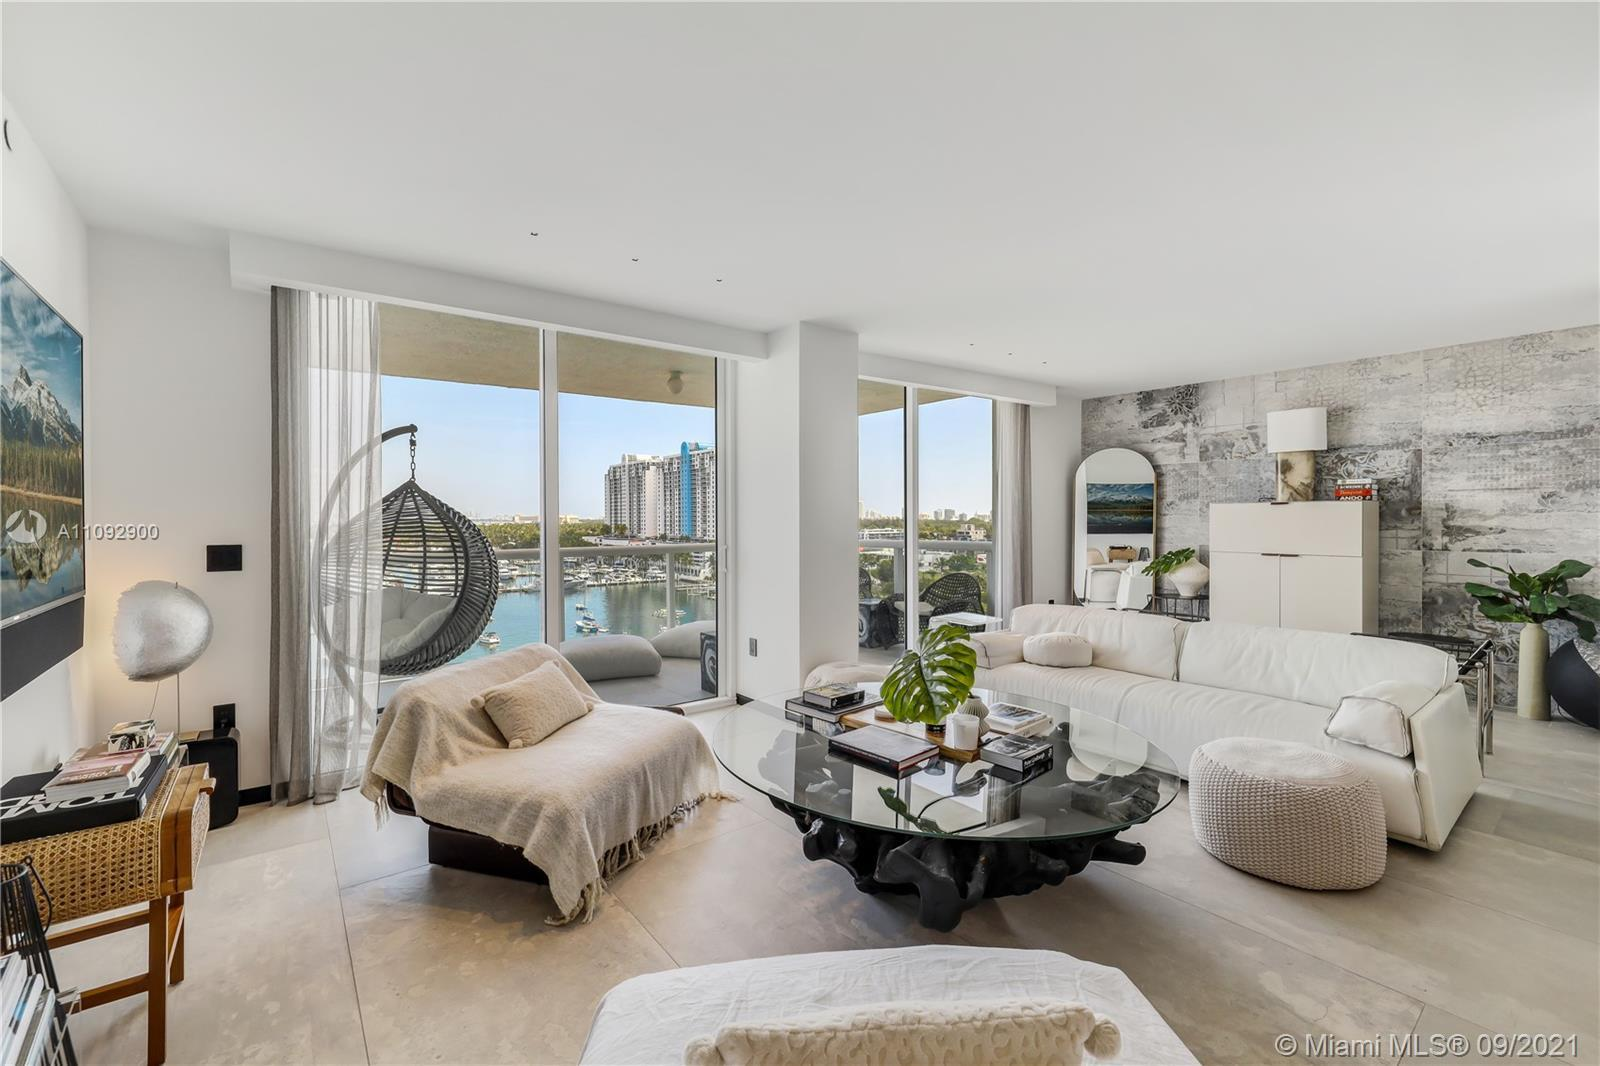 This stunning unit is located on Belle Island. Fully furnished unit includes a full suite of modern